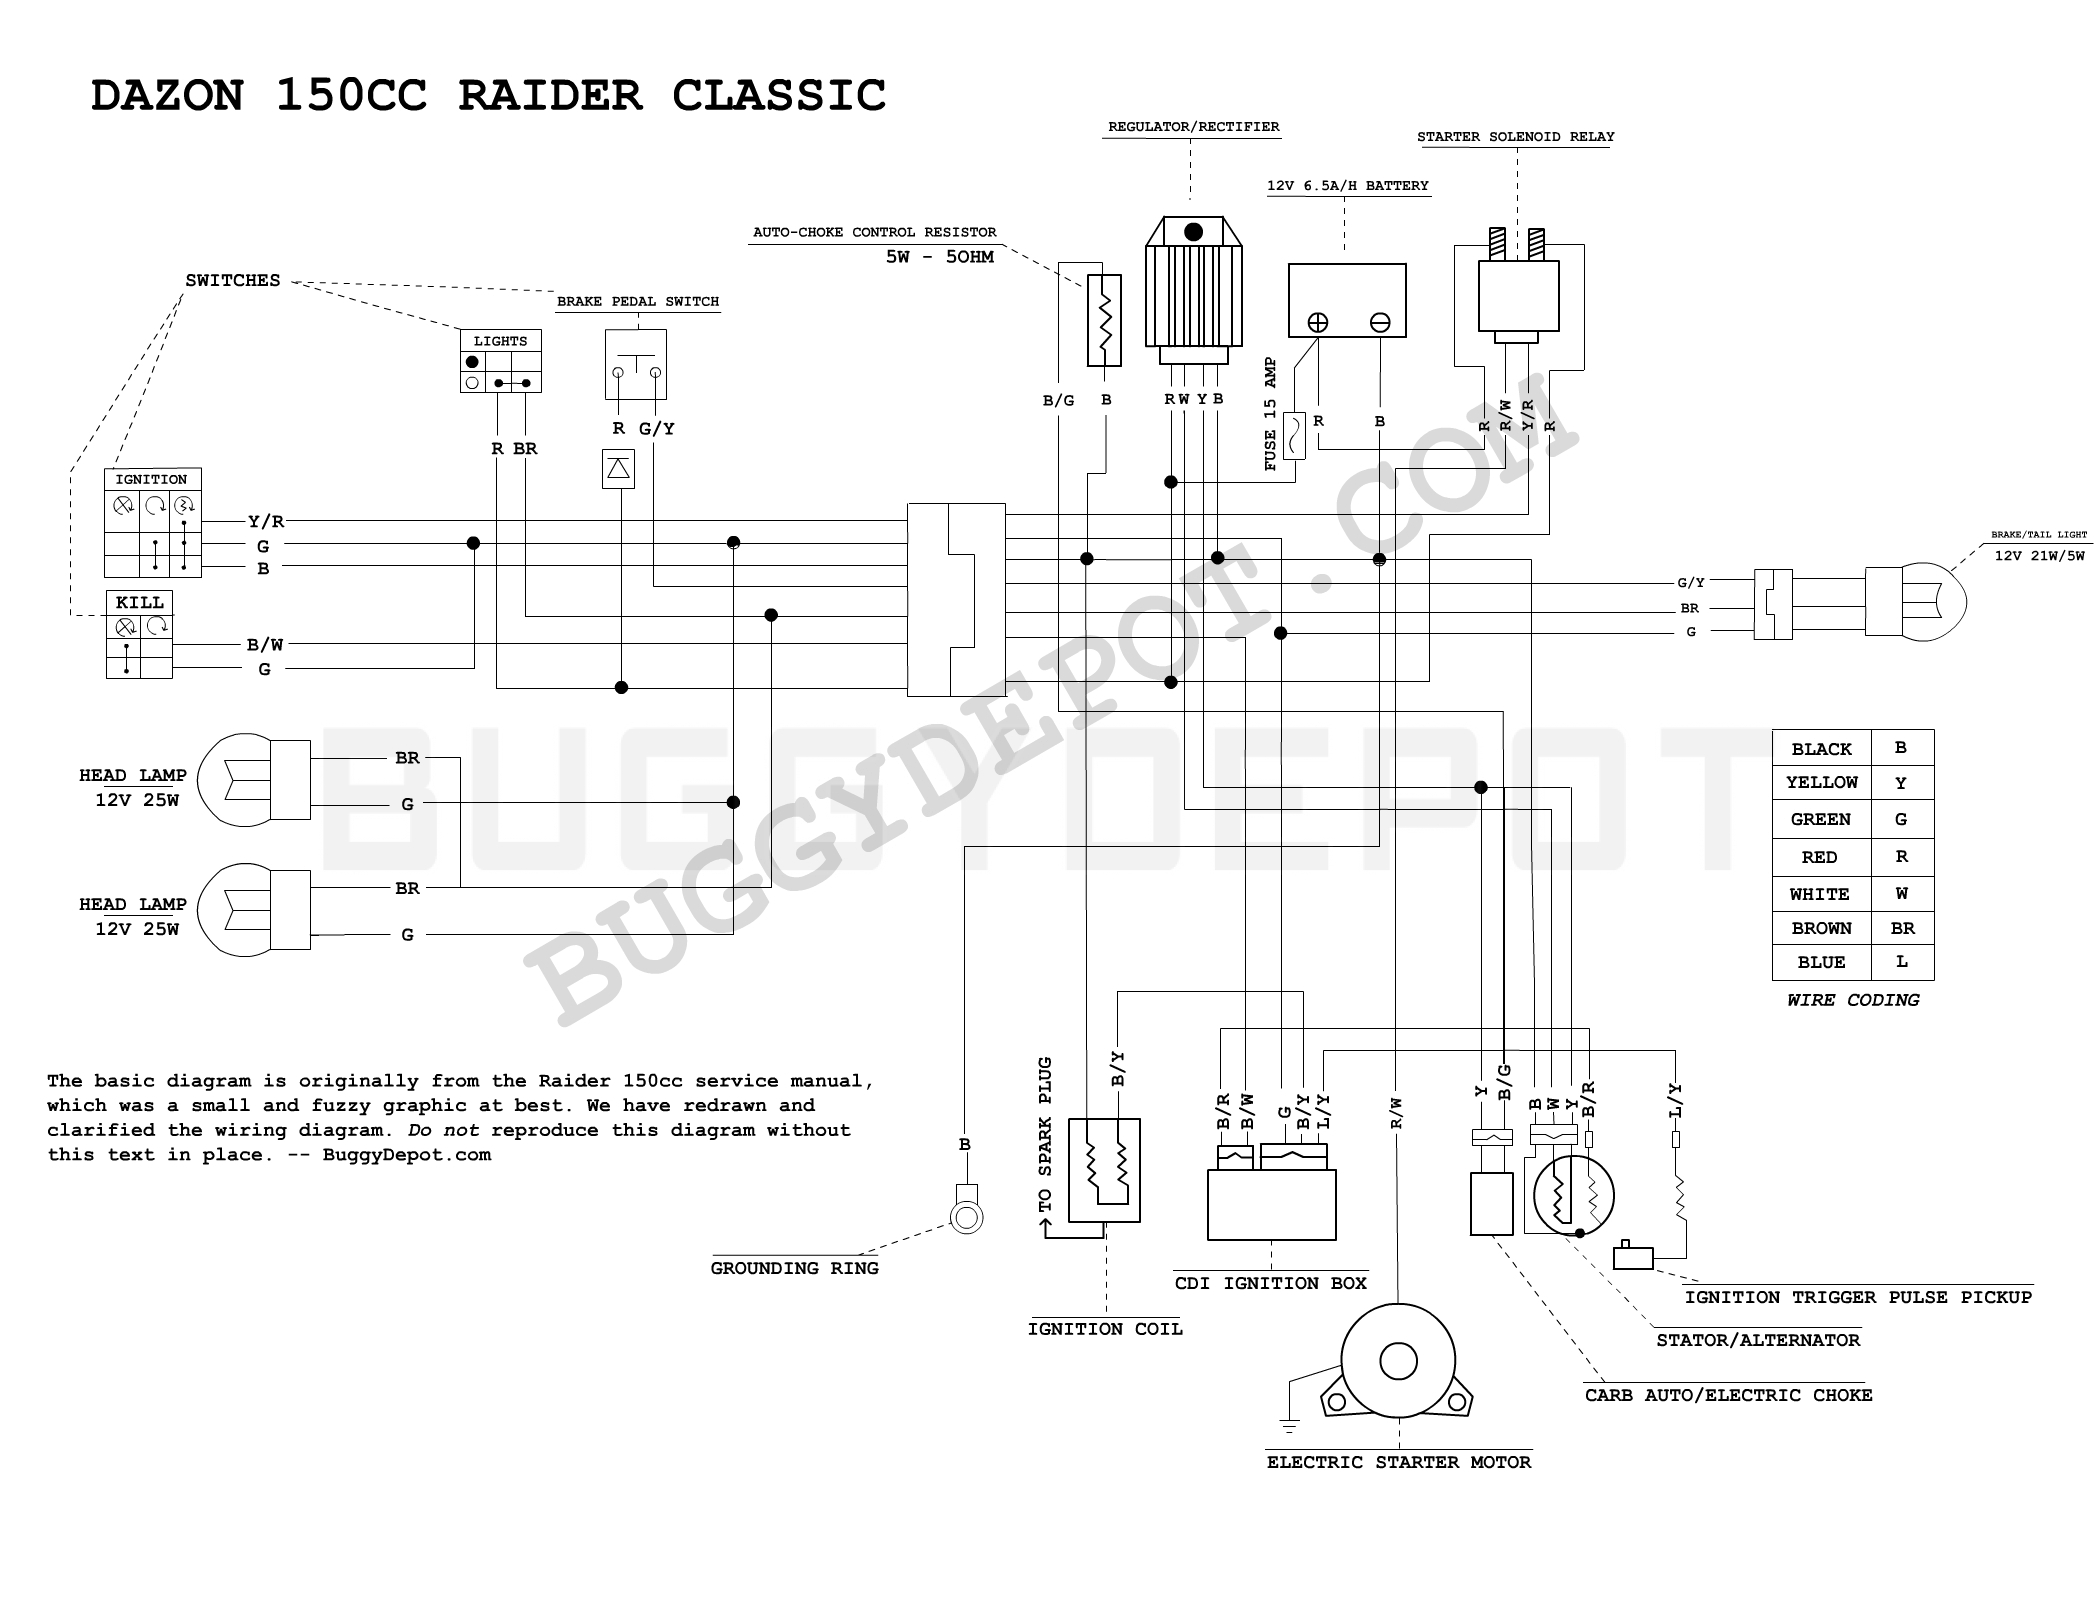 article_33_1278205207 dazon raider classic wiring diagram buggy depot technical center chinese 4 wheeler wiring diagram at mr168.co